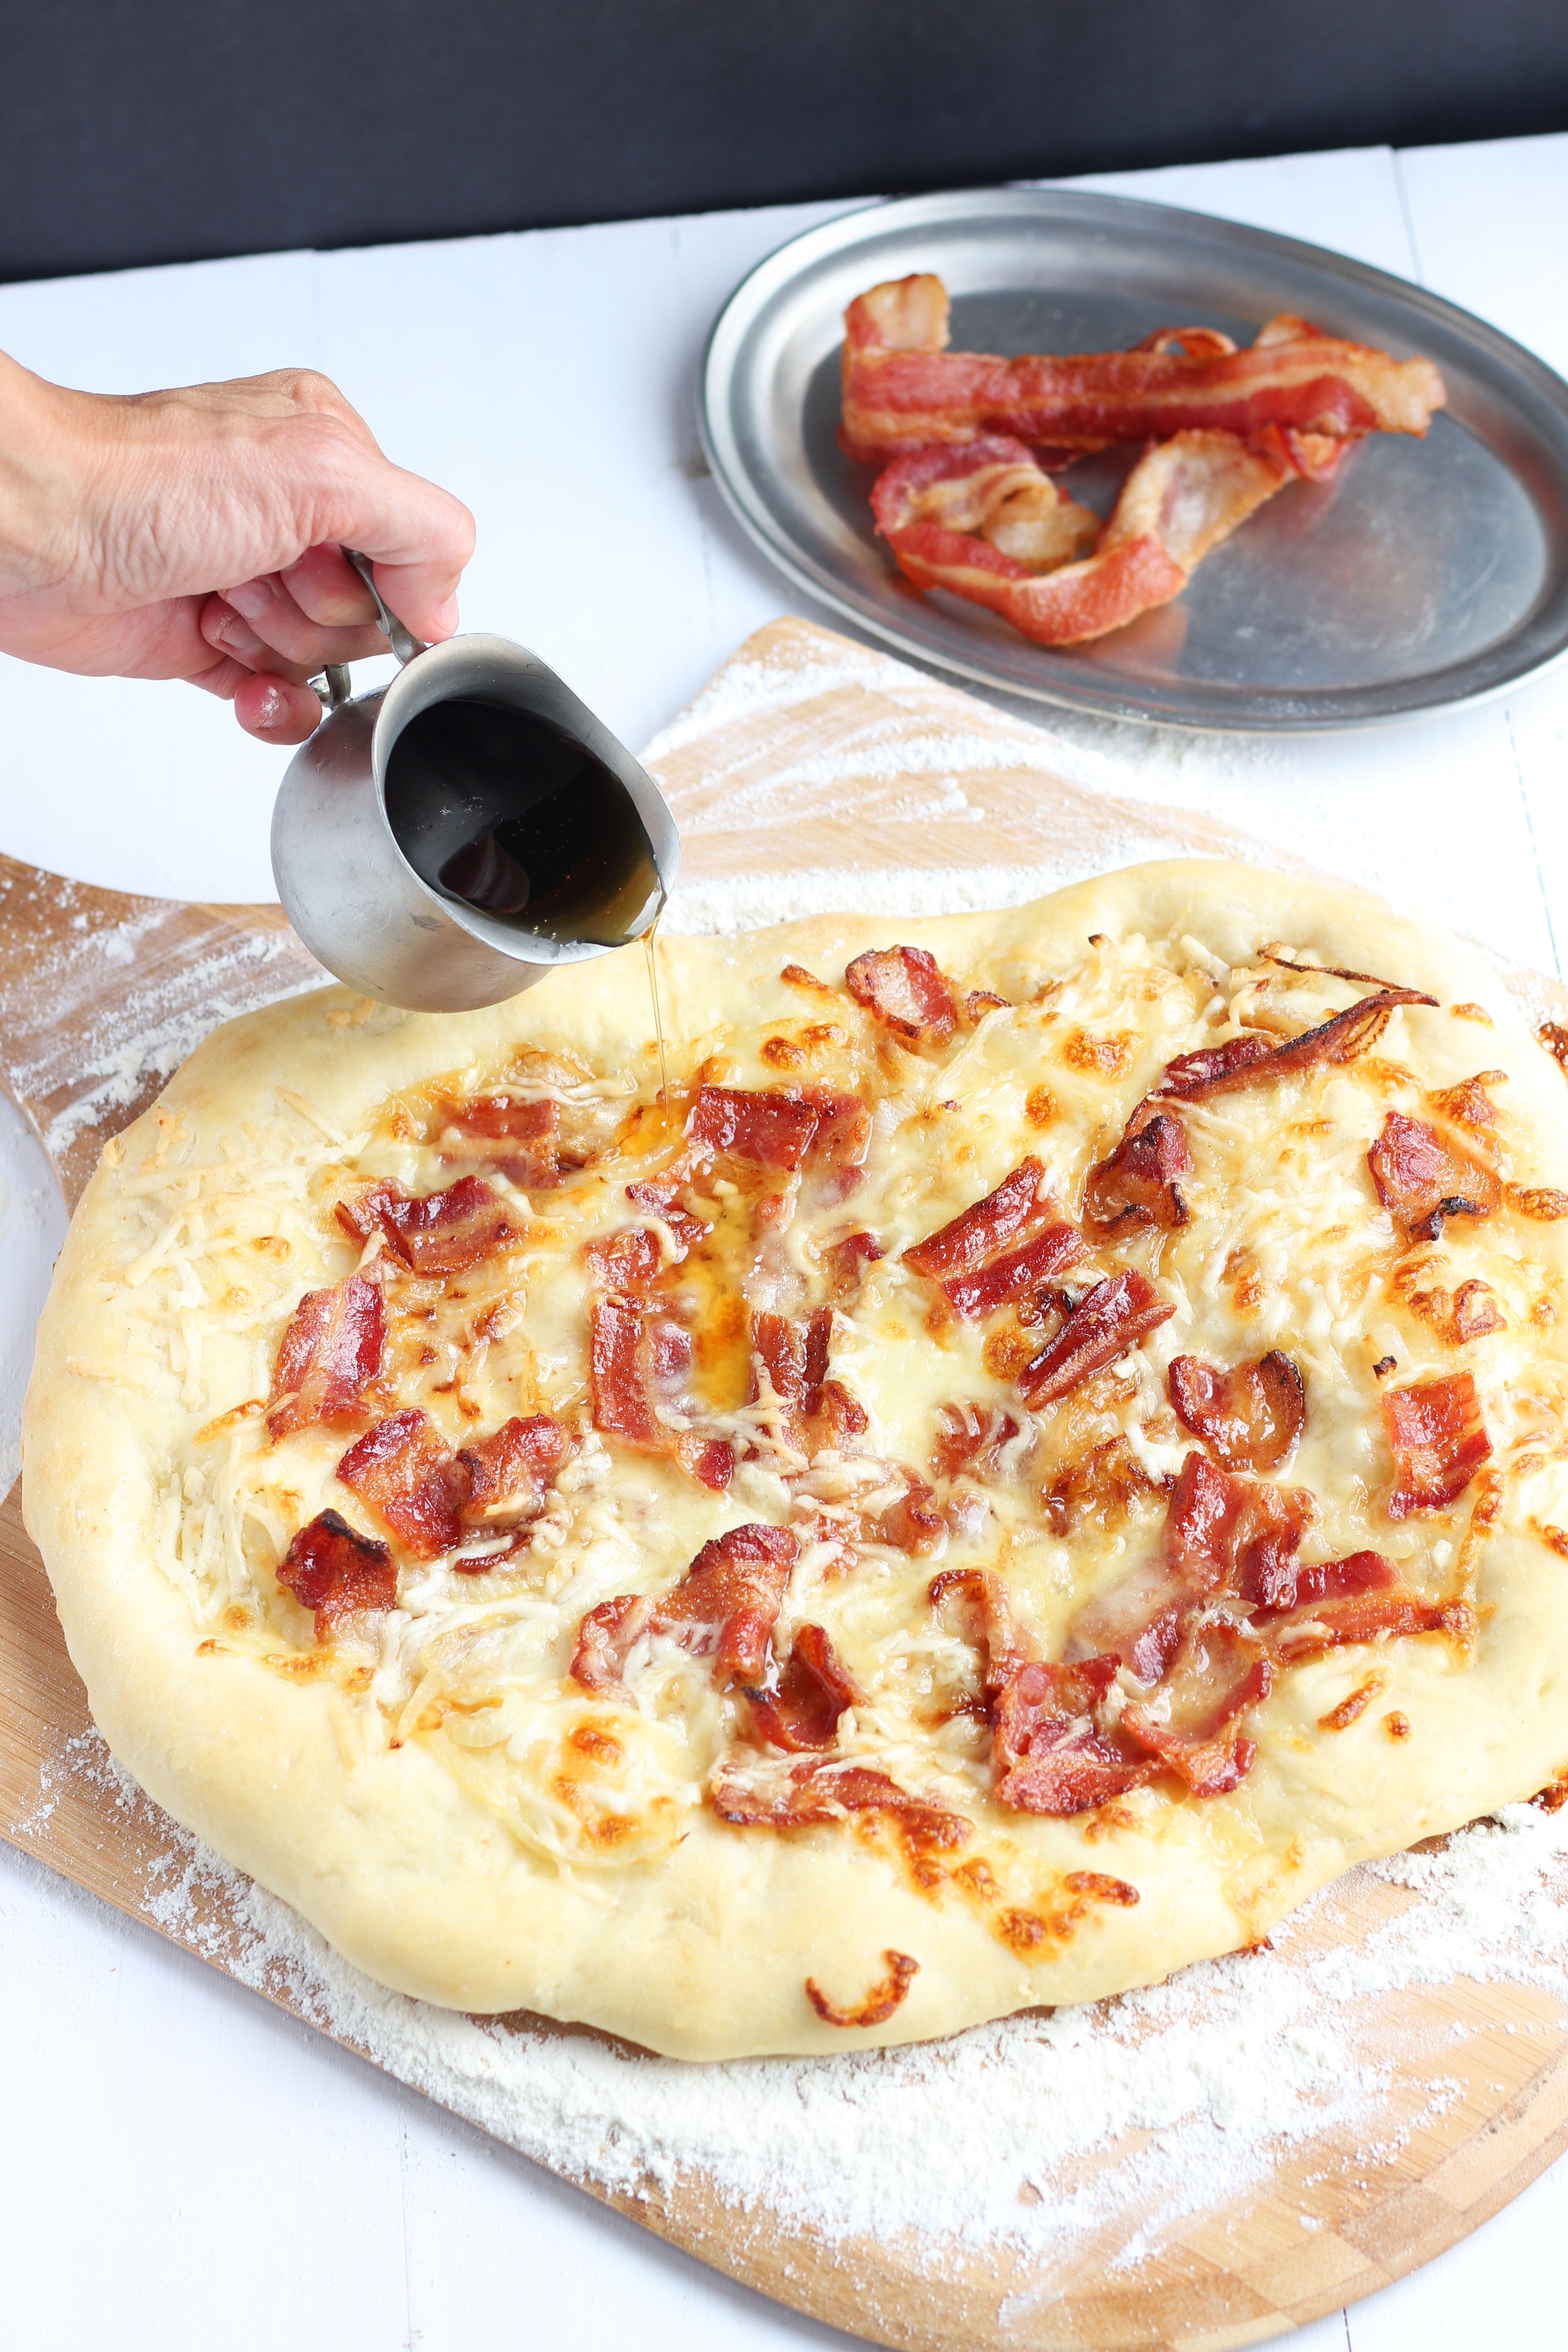 Maple Bacon and Caramelized Onion Pizza